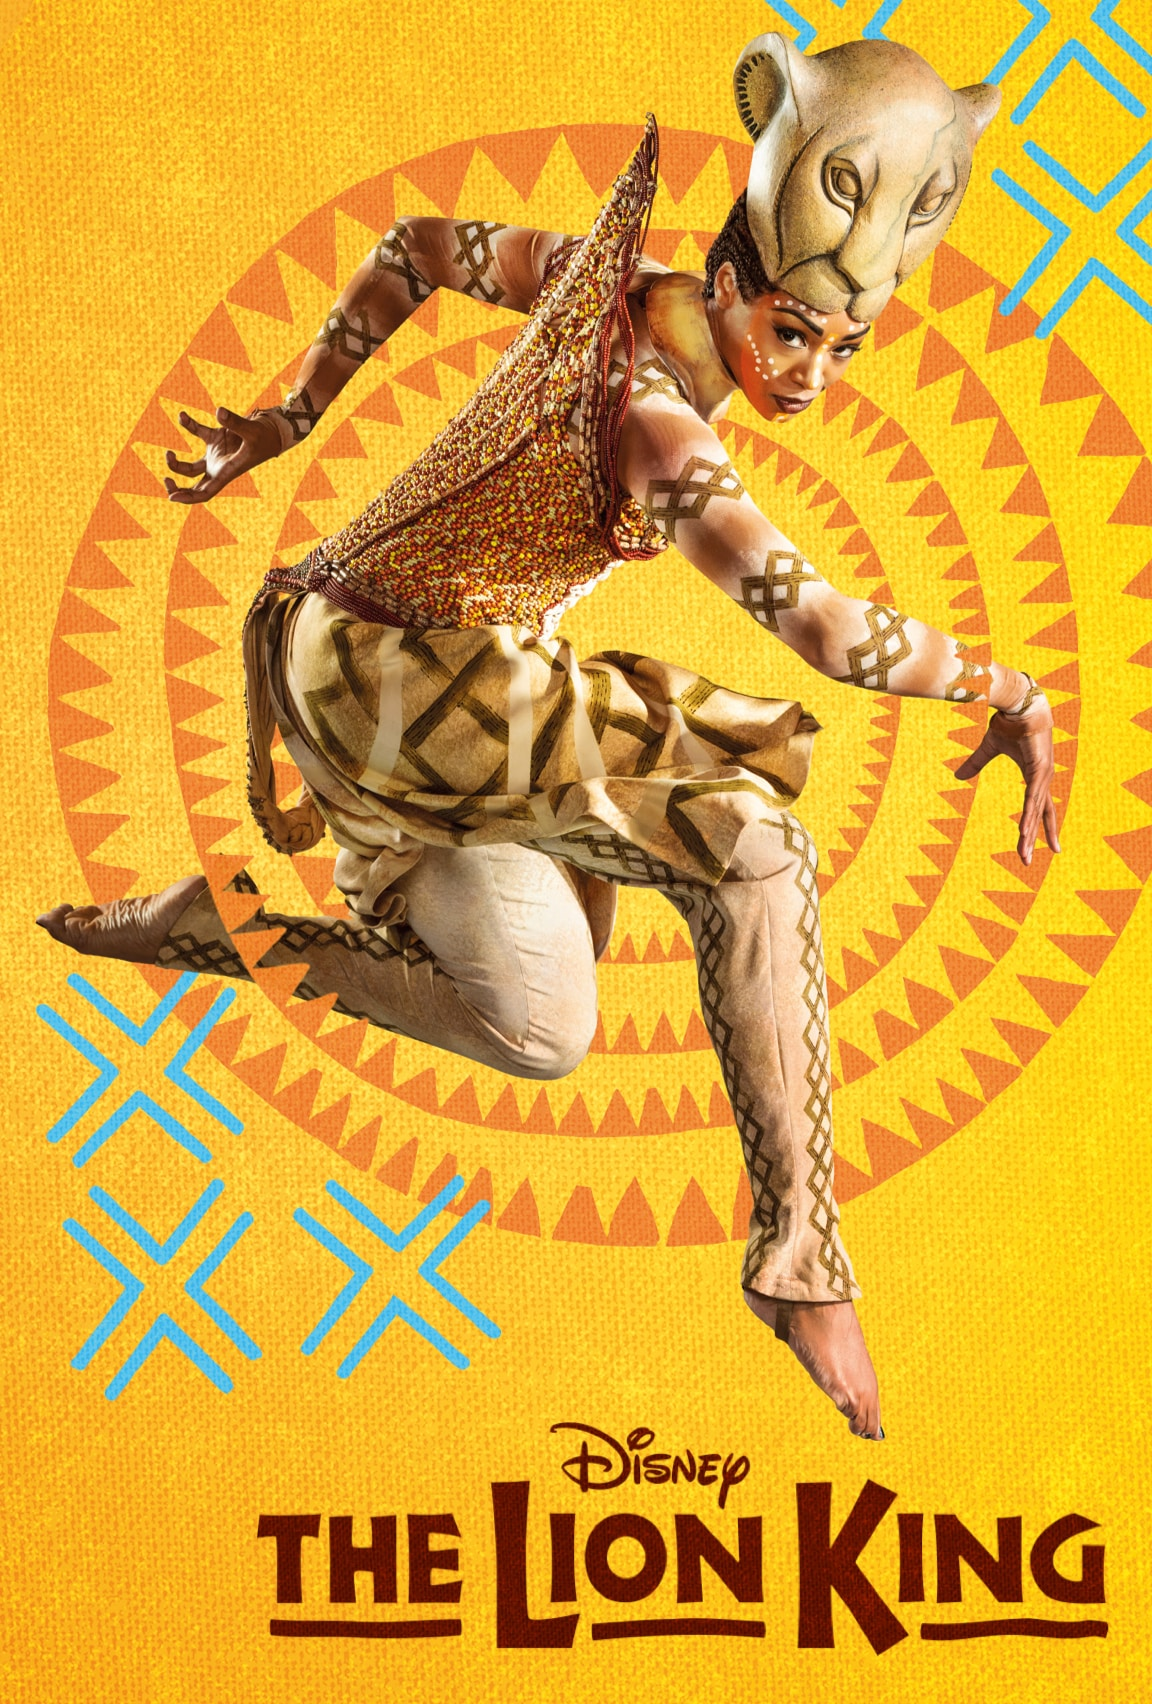 The Nala character jumping to the air as a lion surrounded by illustrated patterns on a yellow and orange background